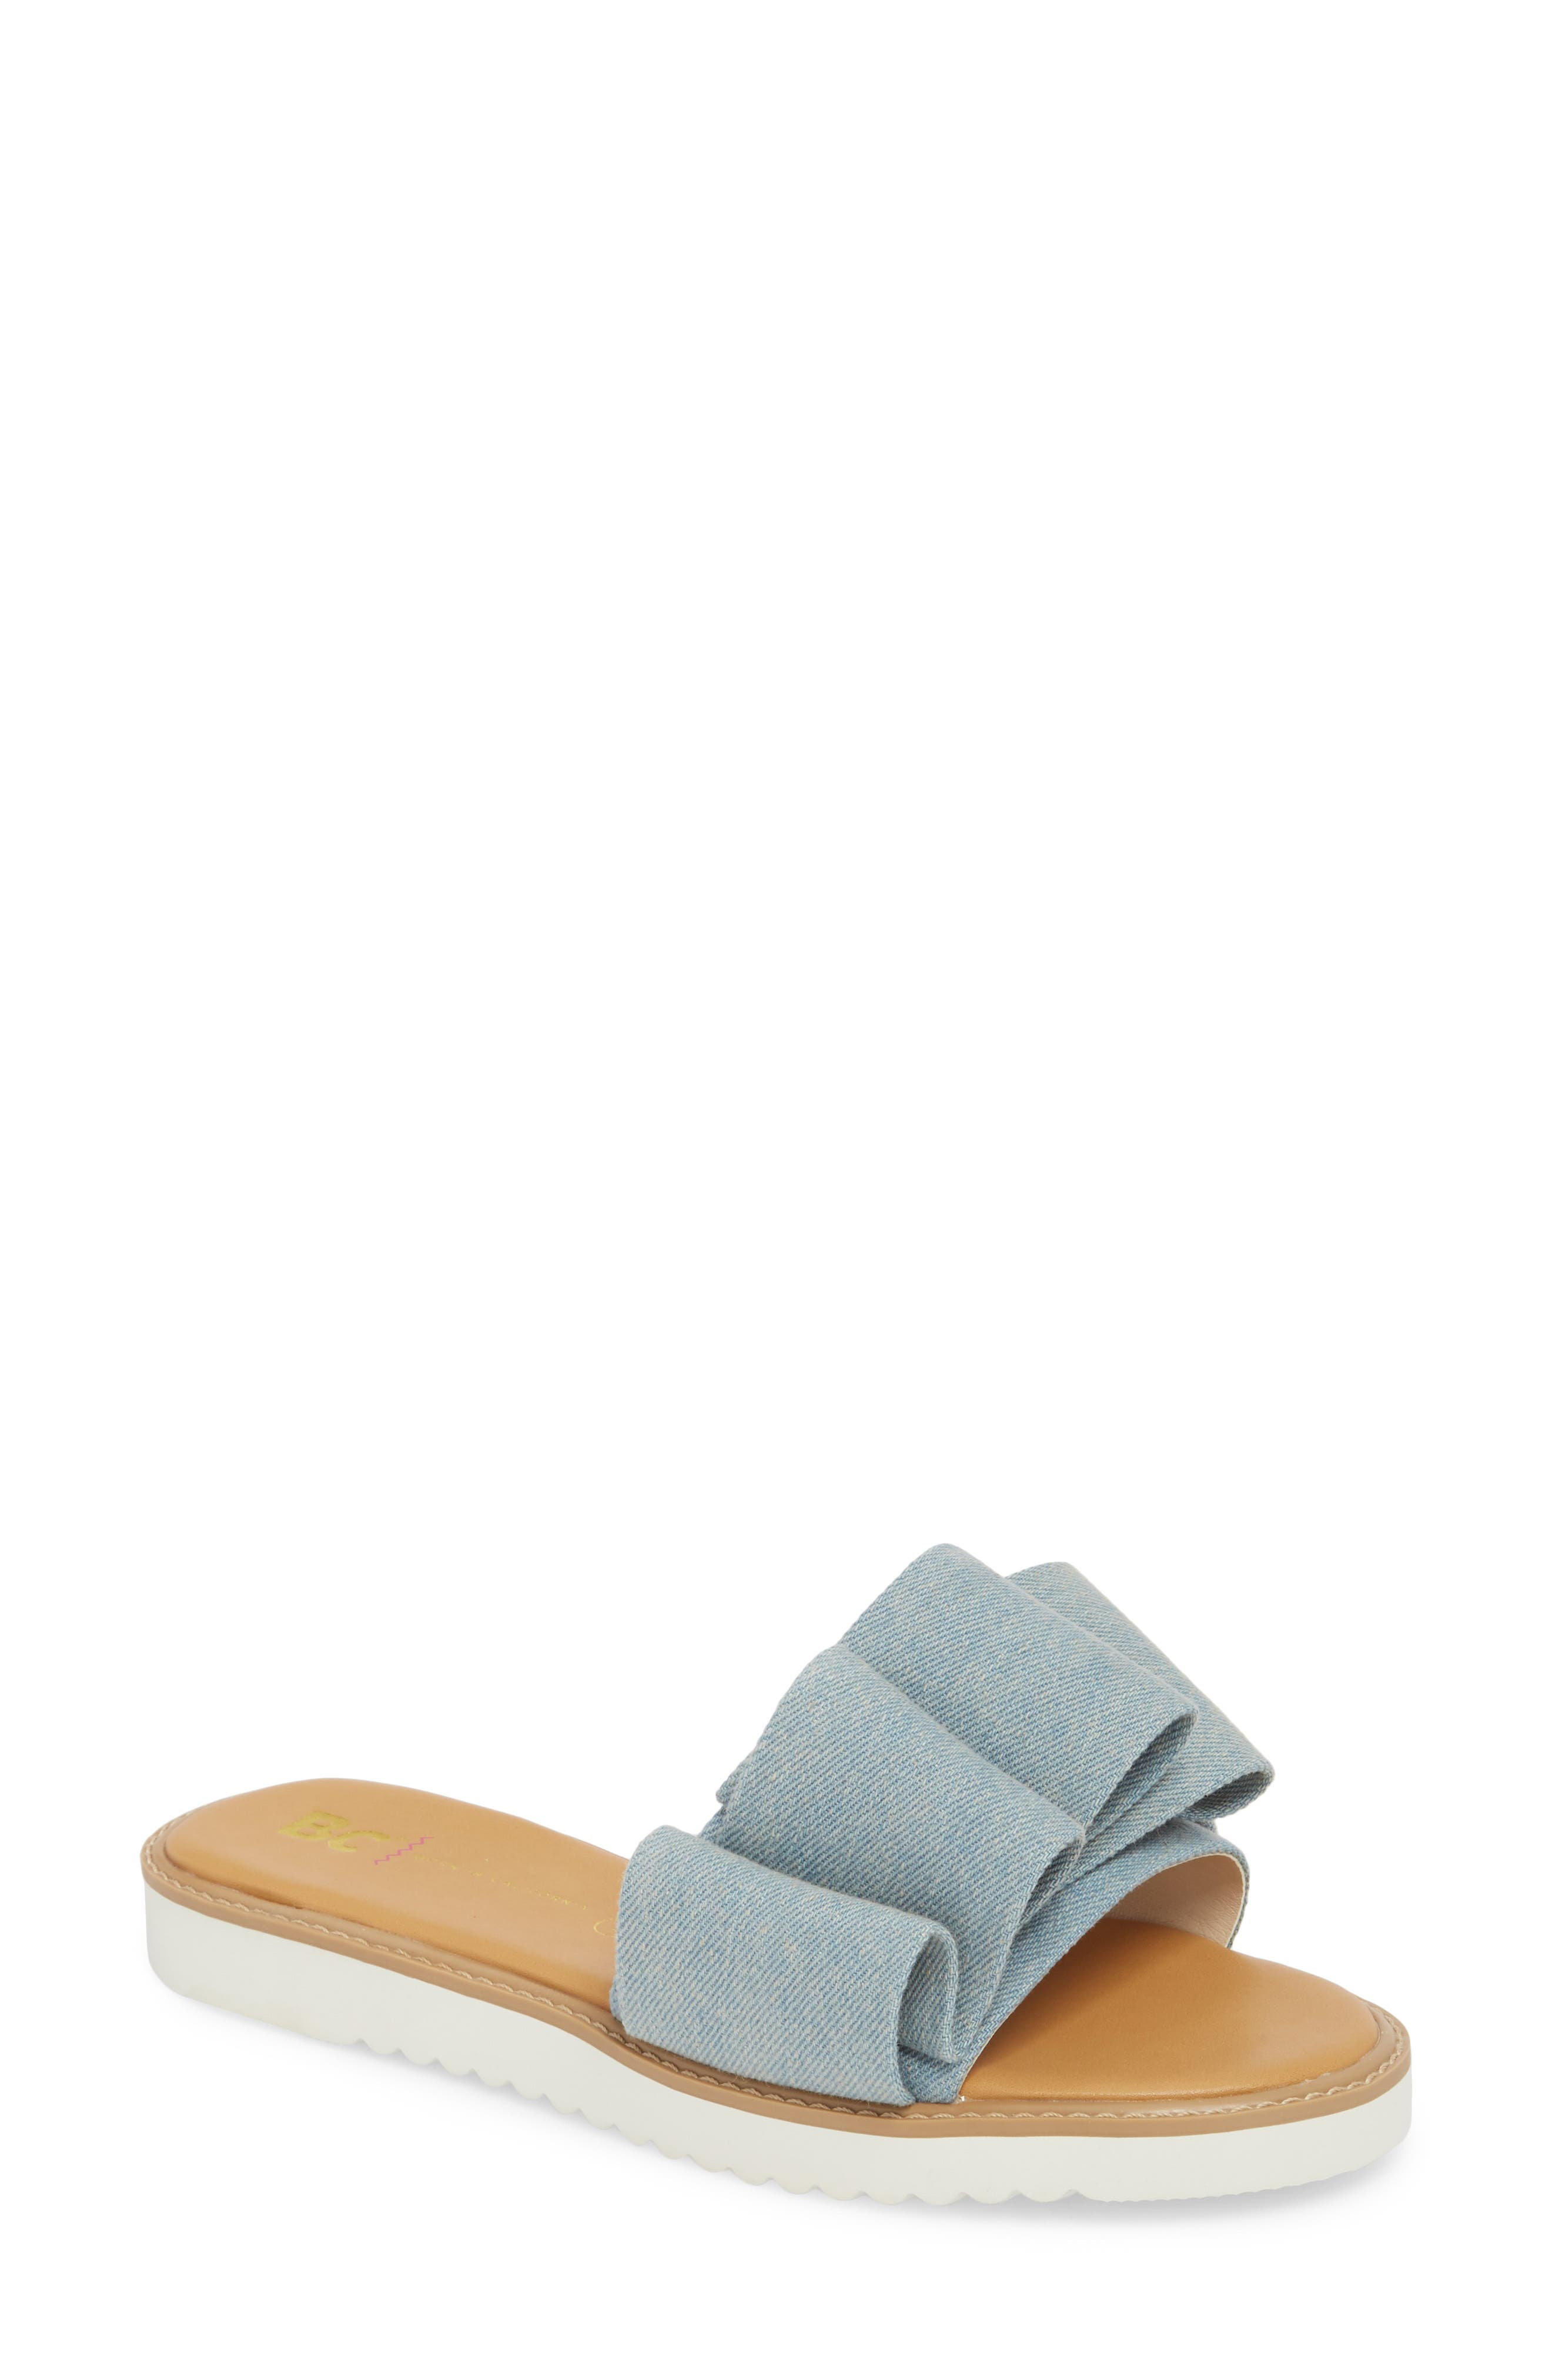 Fun for All Ages Pleated Sandal,                         Main,                         color, Light Blue Denim